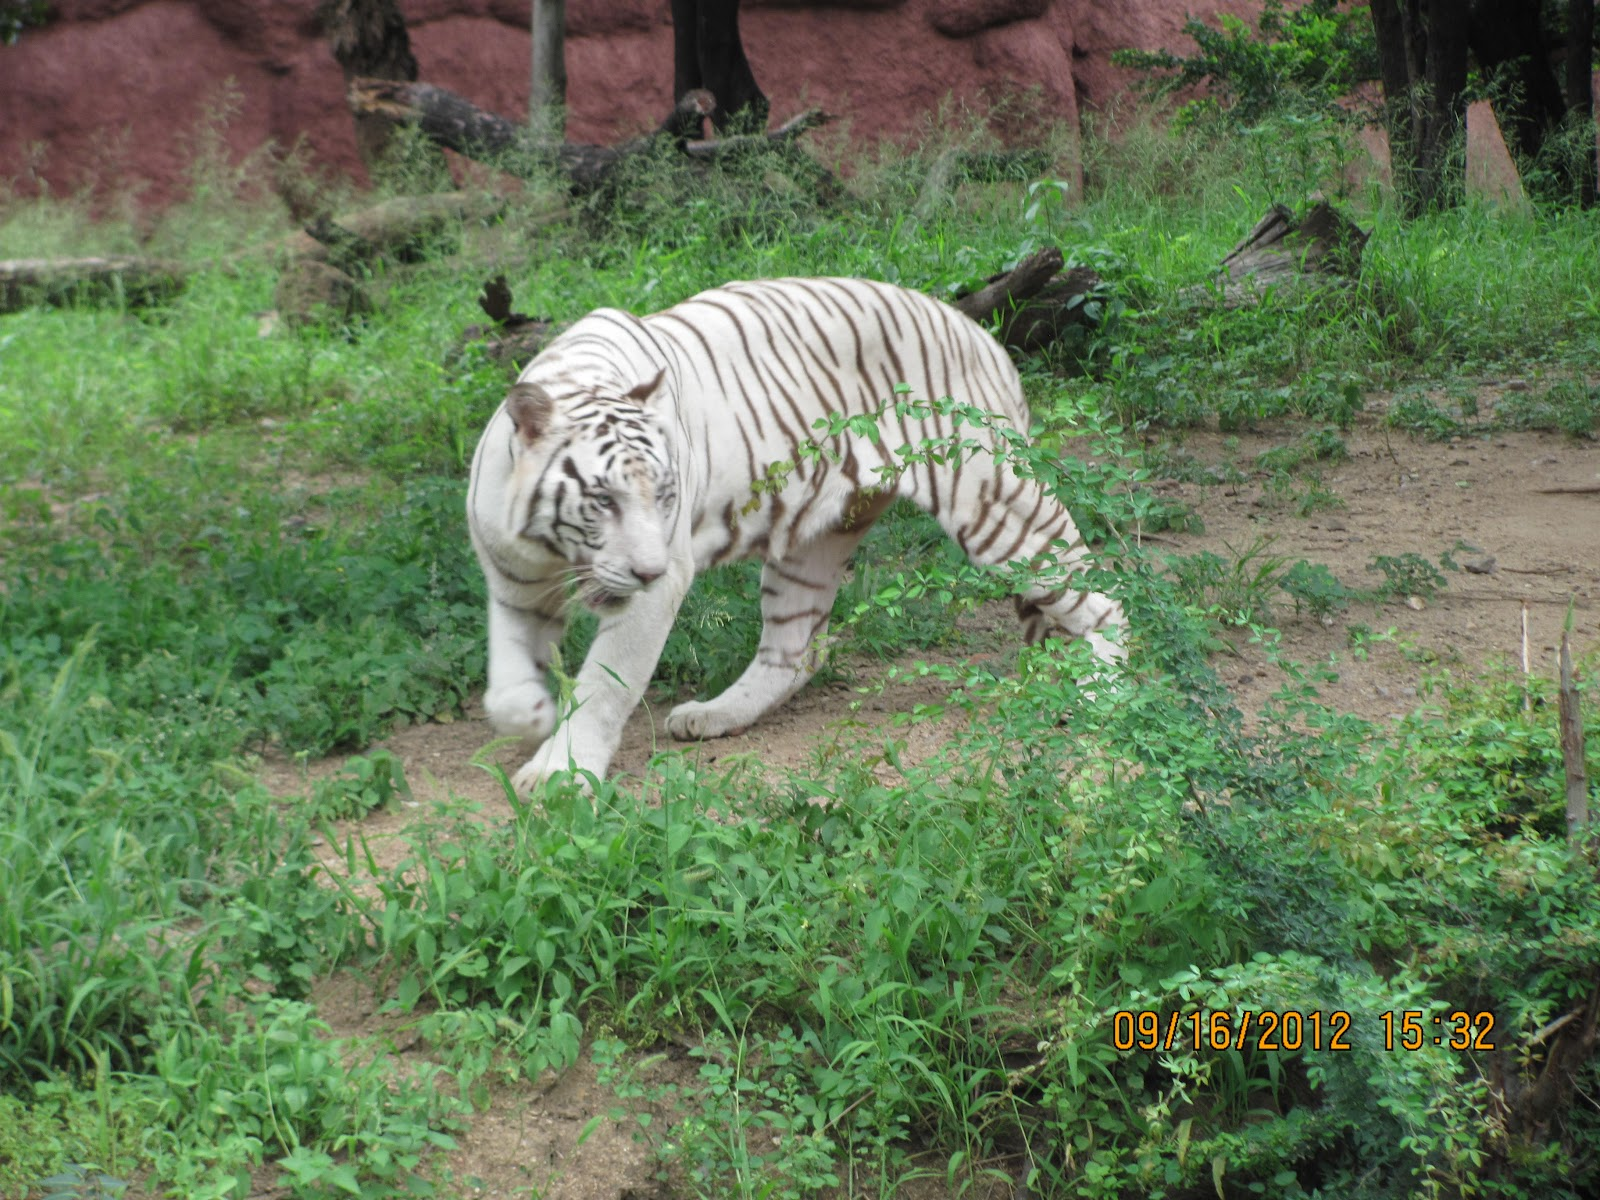 Zoologist With White Tiger Snap of white tiger present inZoologist With Tiger